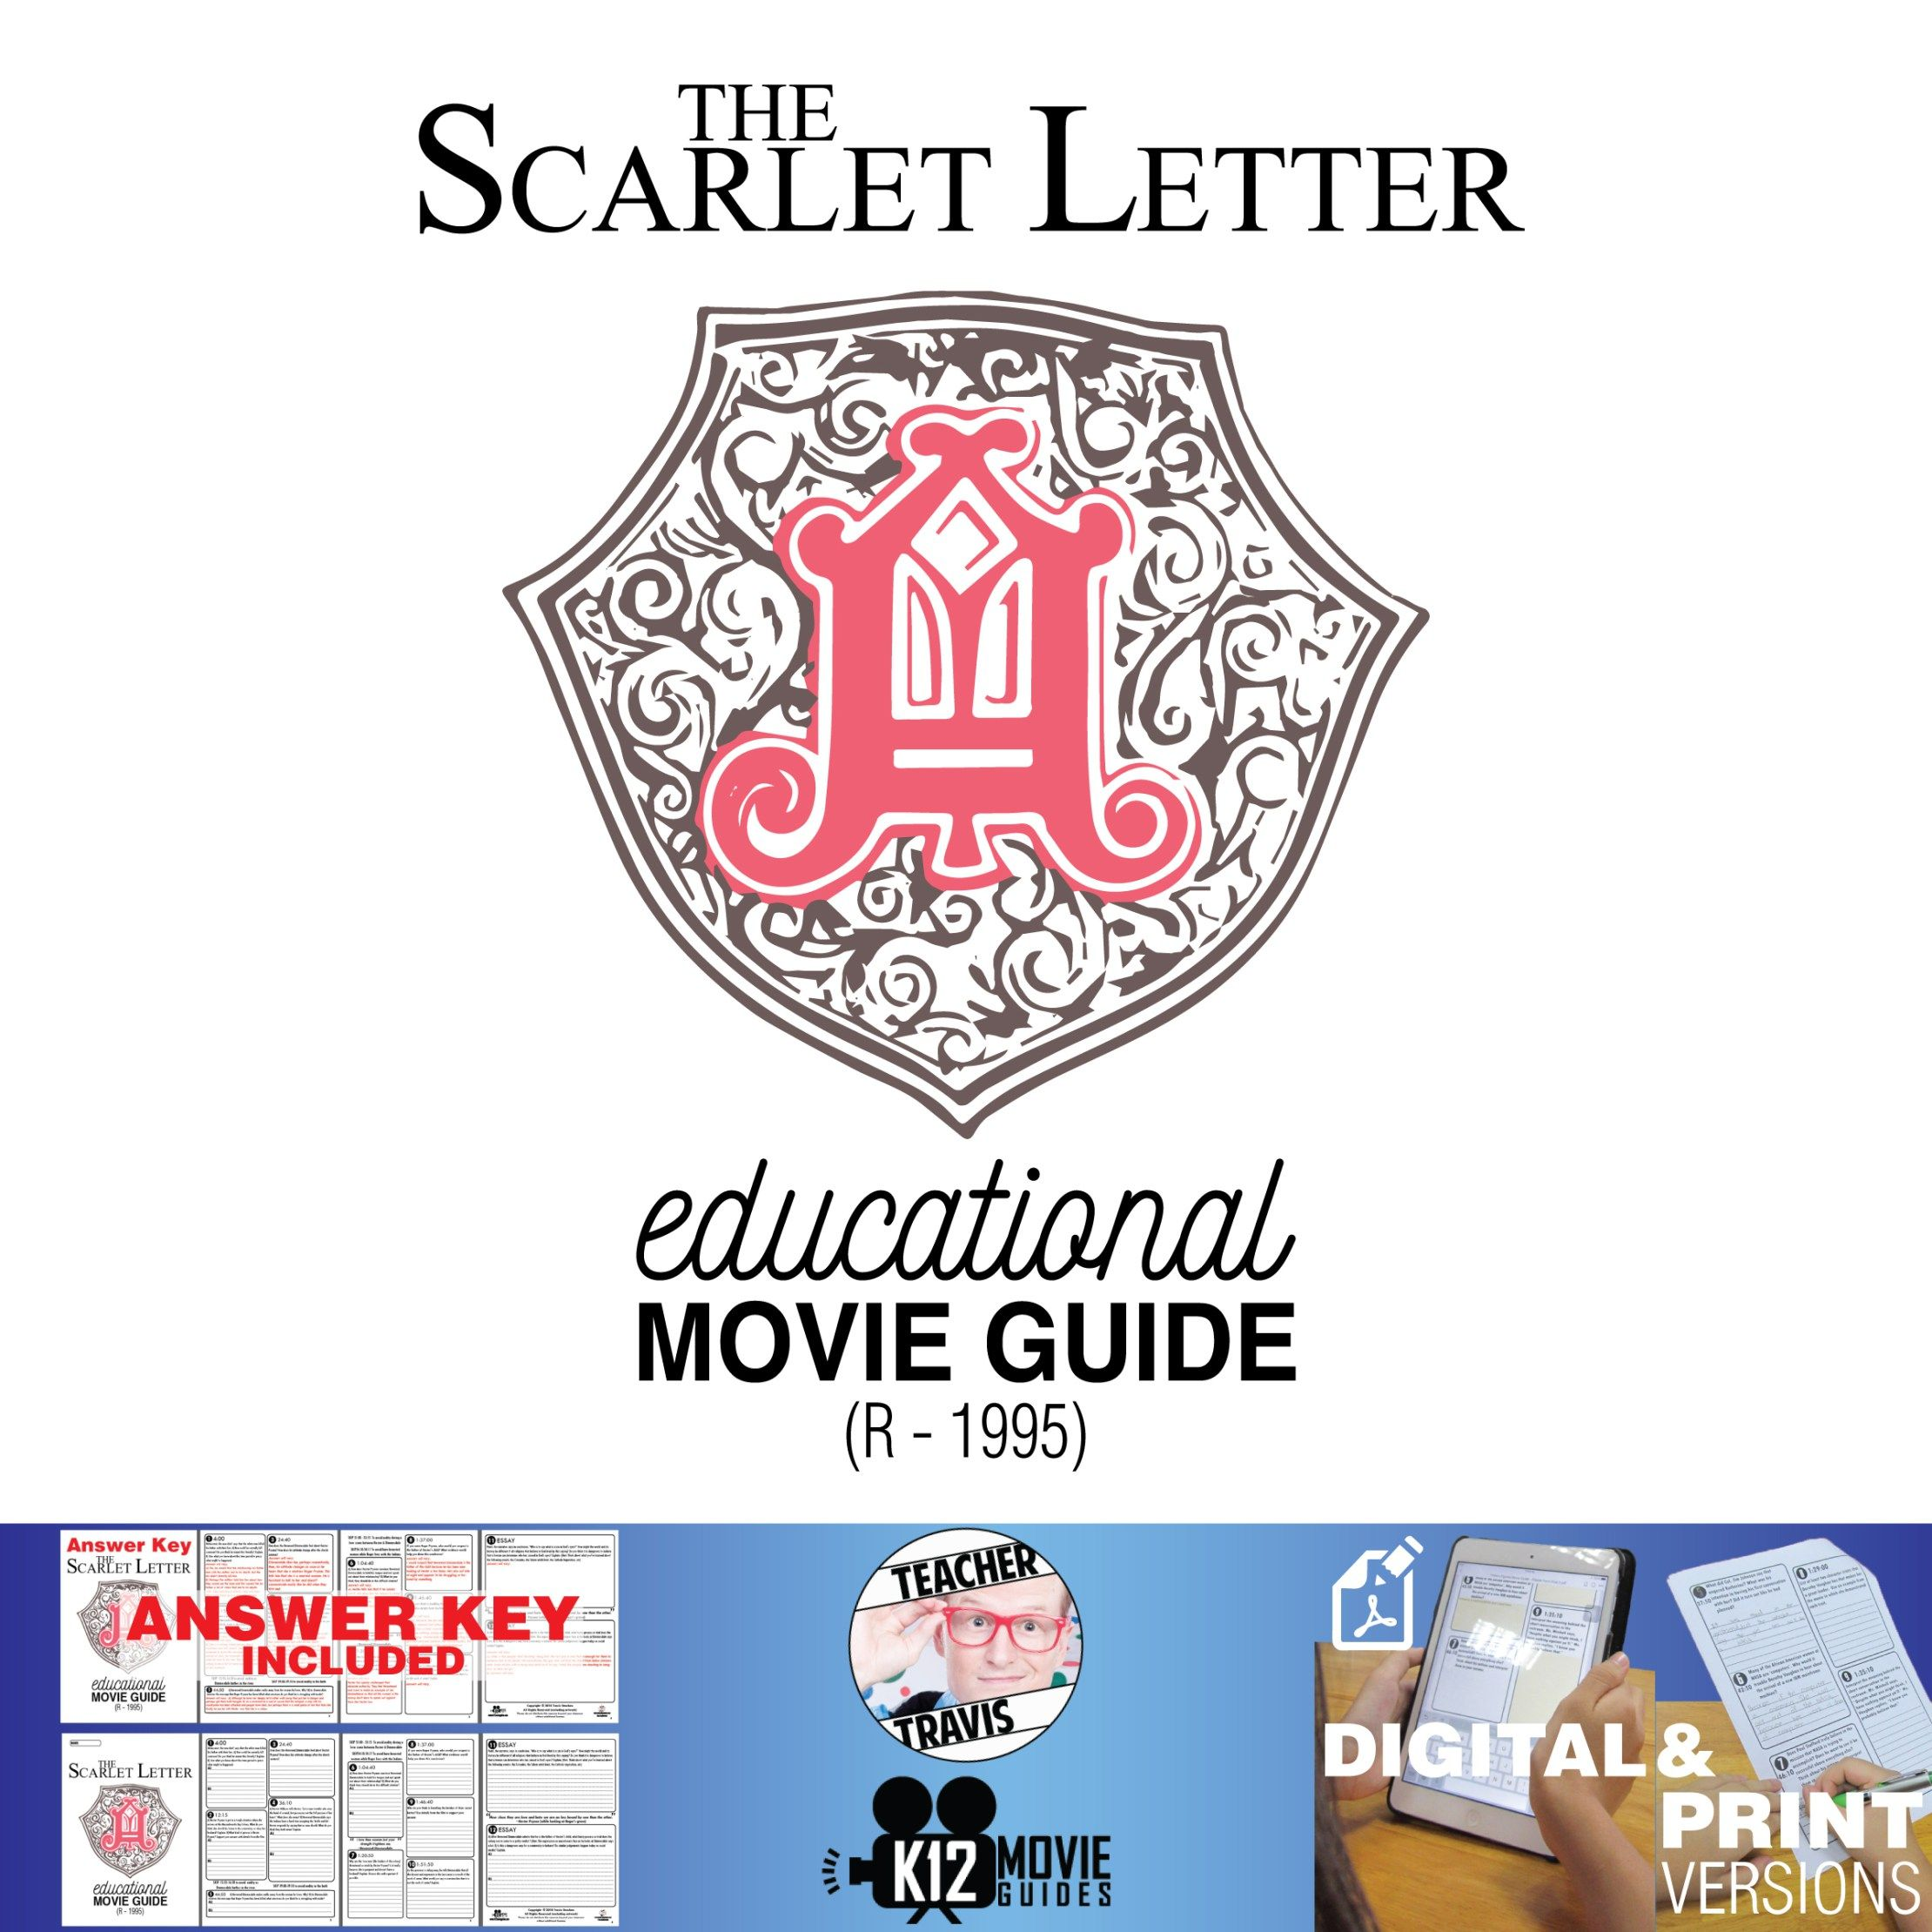 The Scarlet Letter Movie Guide